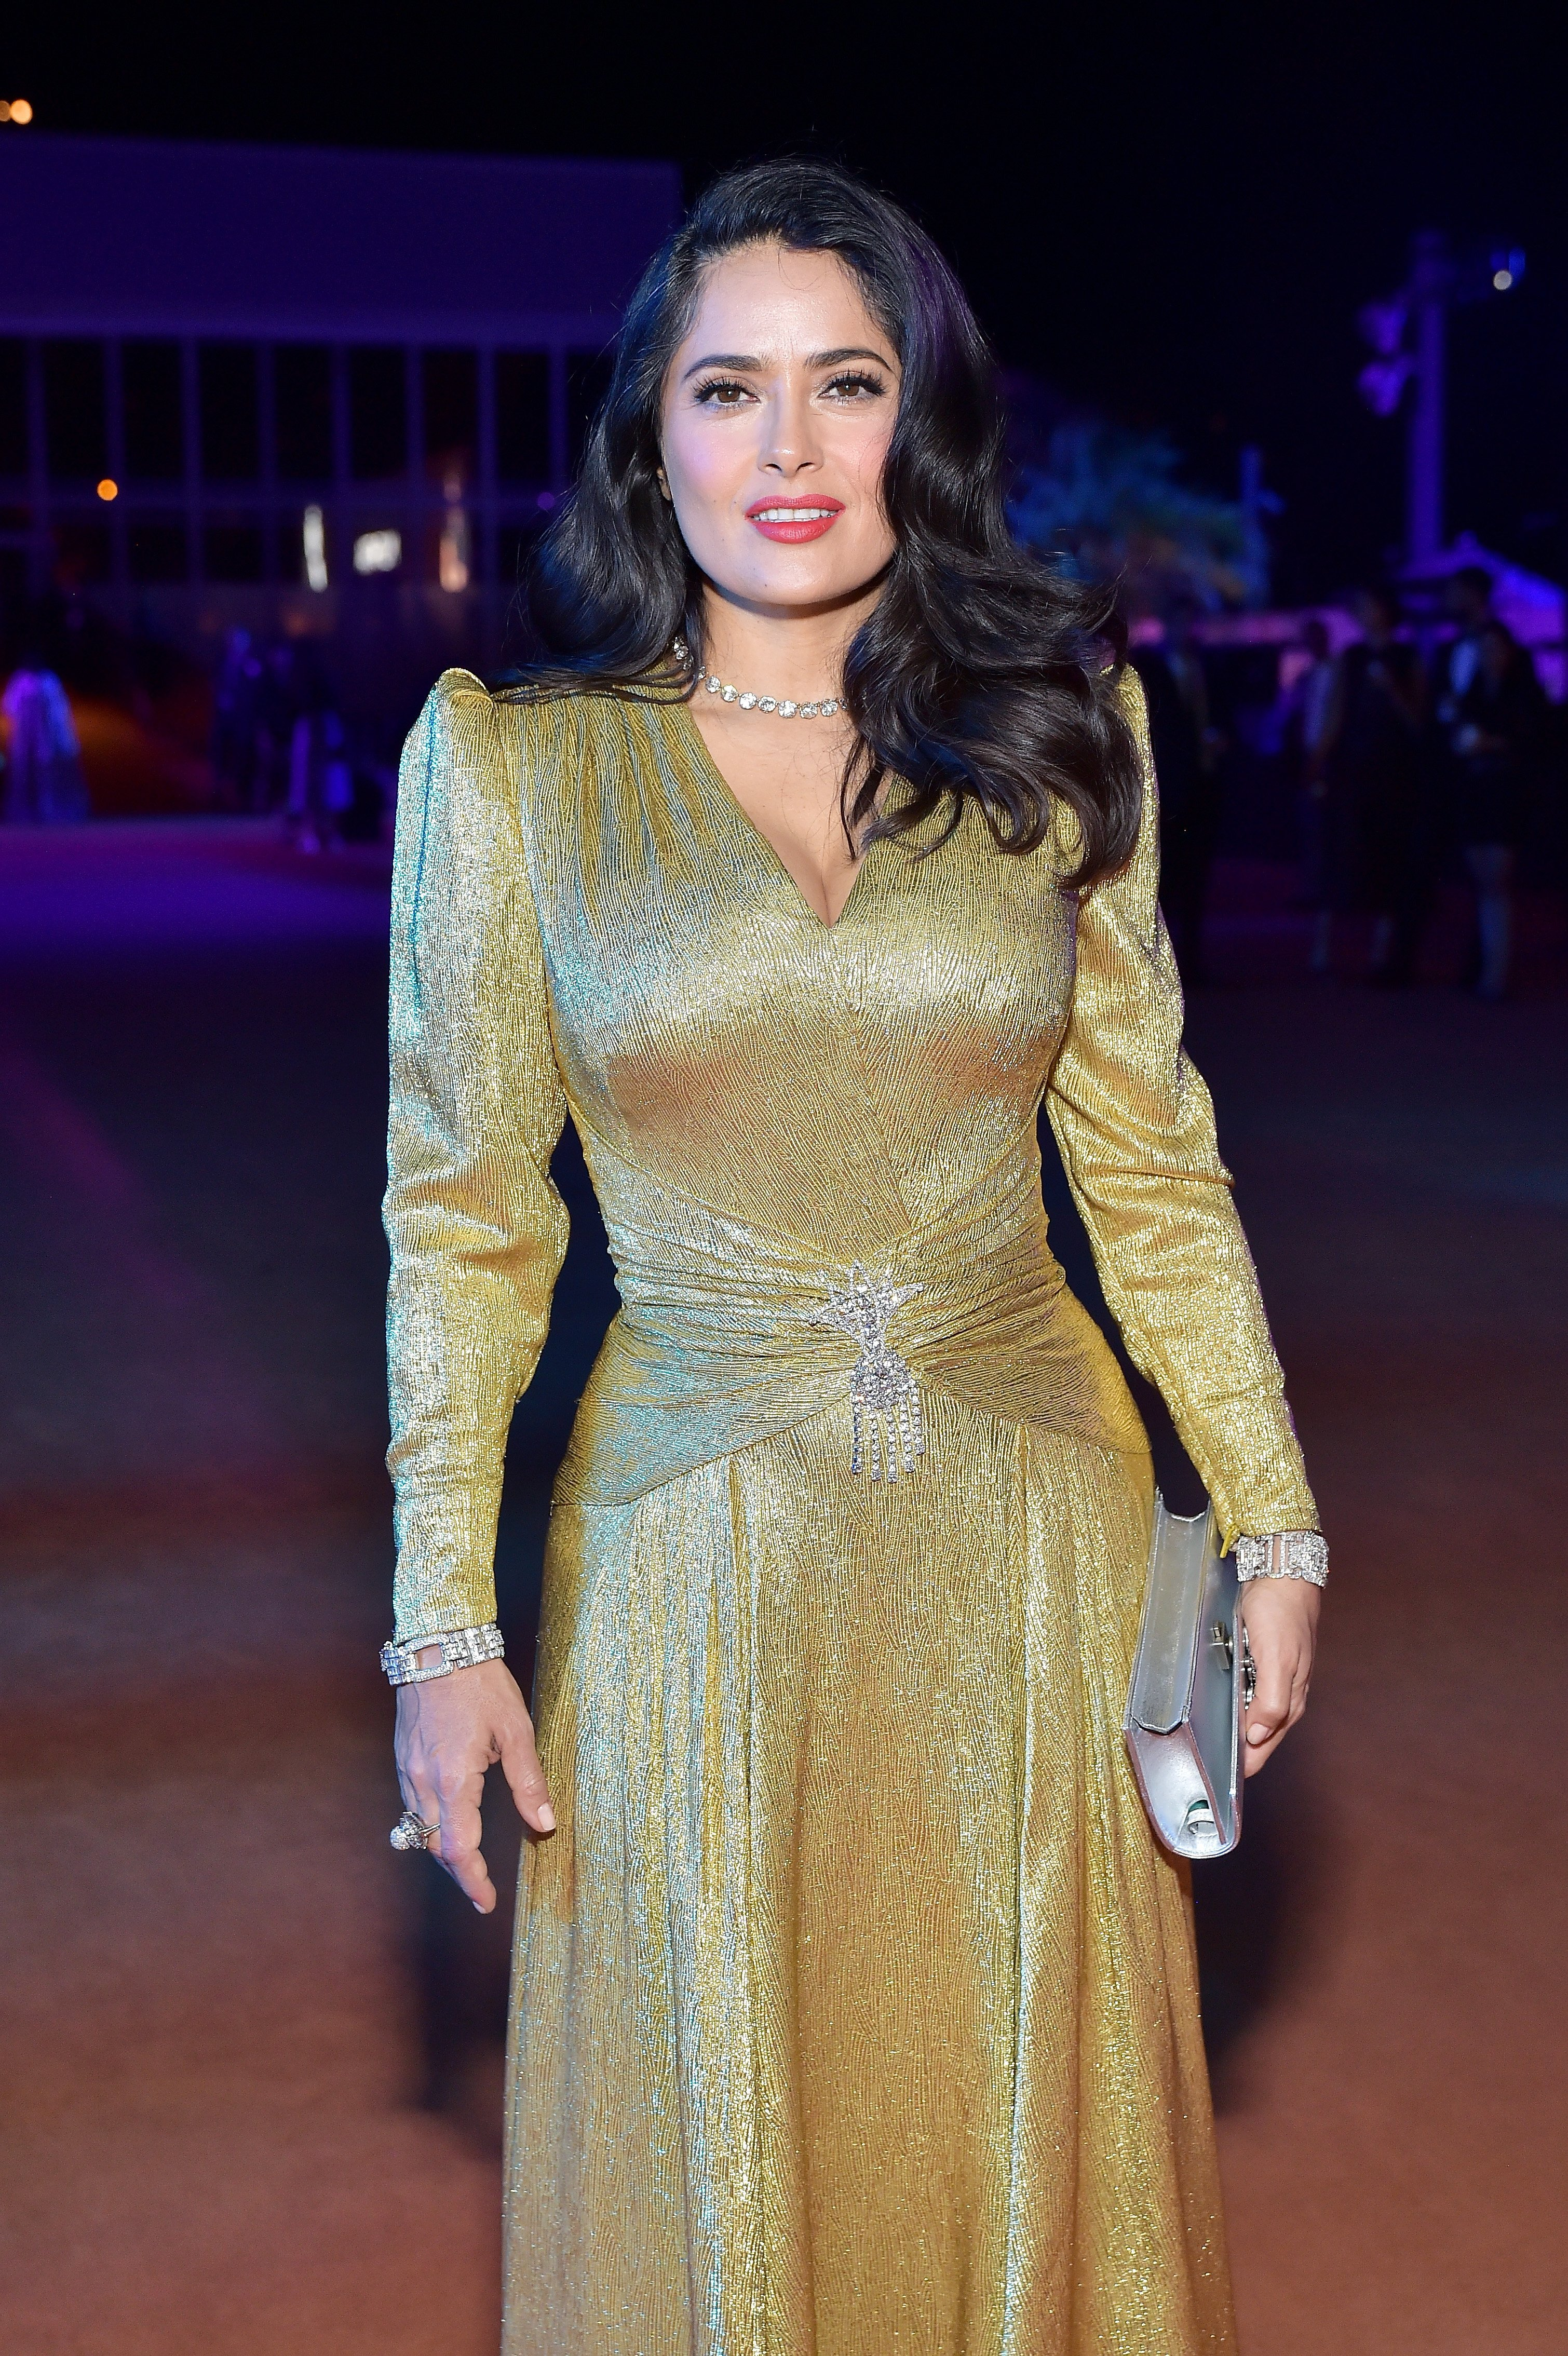 Salma Hayek attends the 2018 LACMA Art and Film Gala | Photo: Getty Images